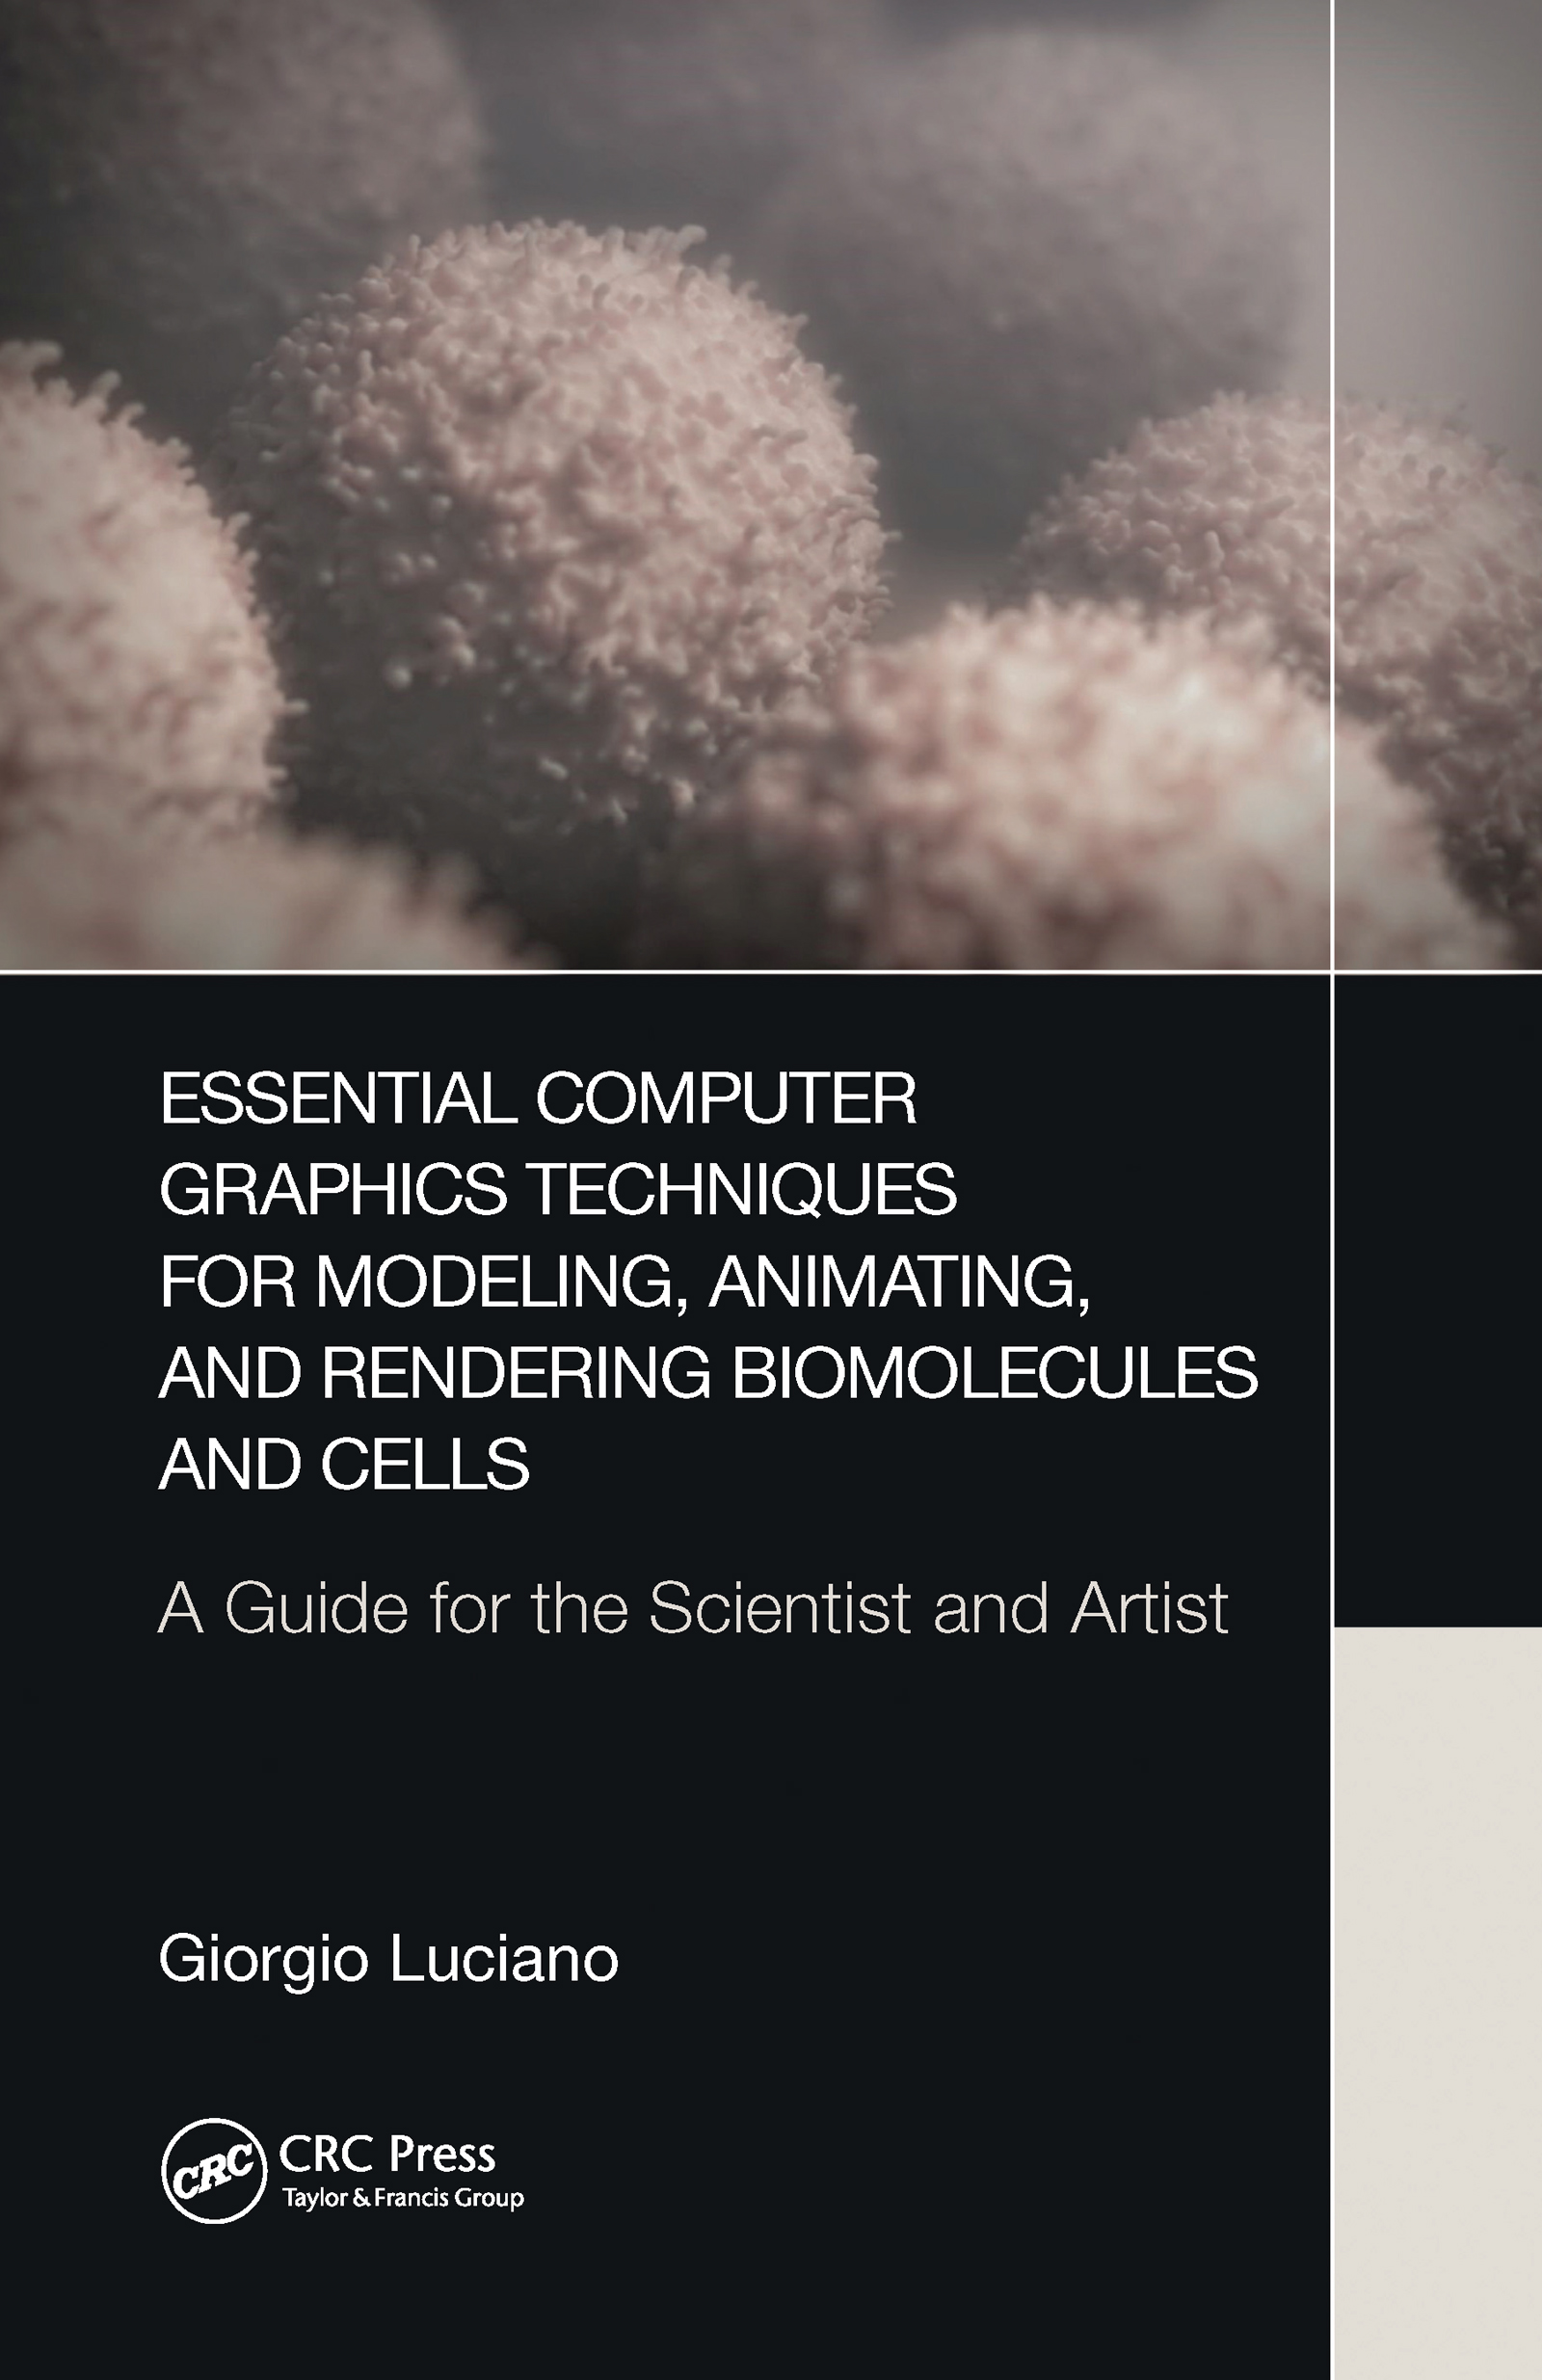 Essential Computer Graphics Techniques for Modeling, Animating, and Rendering Biomolecules and Cells